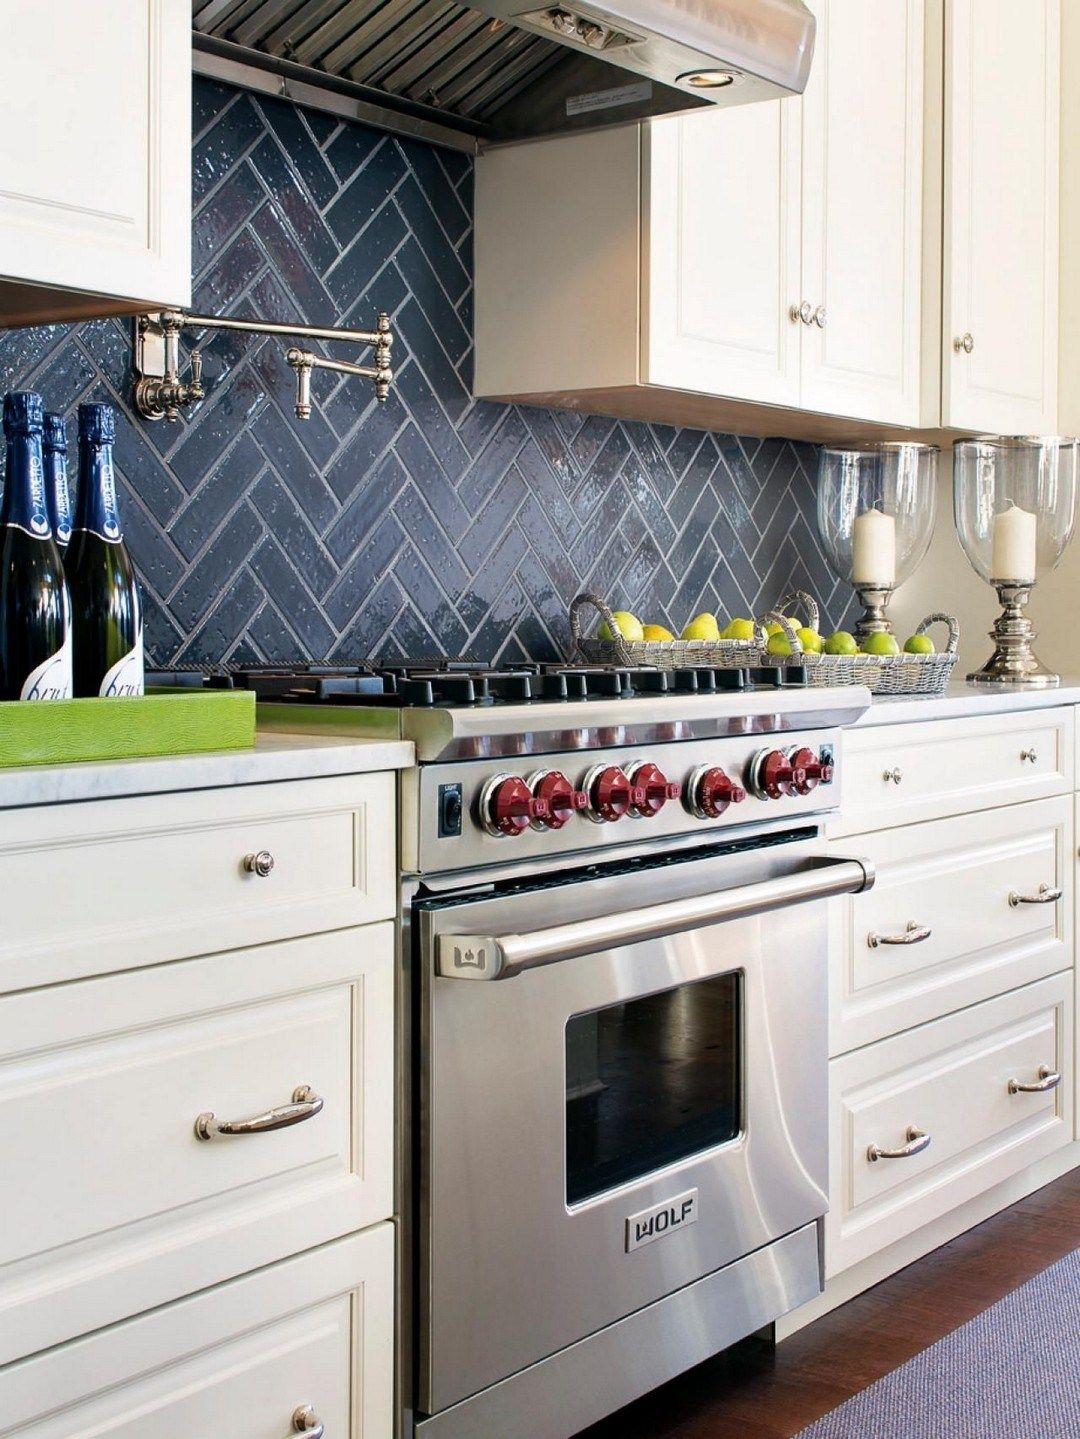 25 Stunning Dark Kitchen Backsplash Design Ideas 5 Herringbone